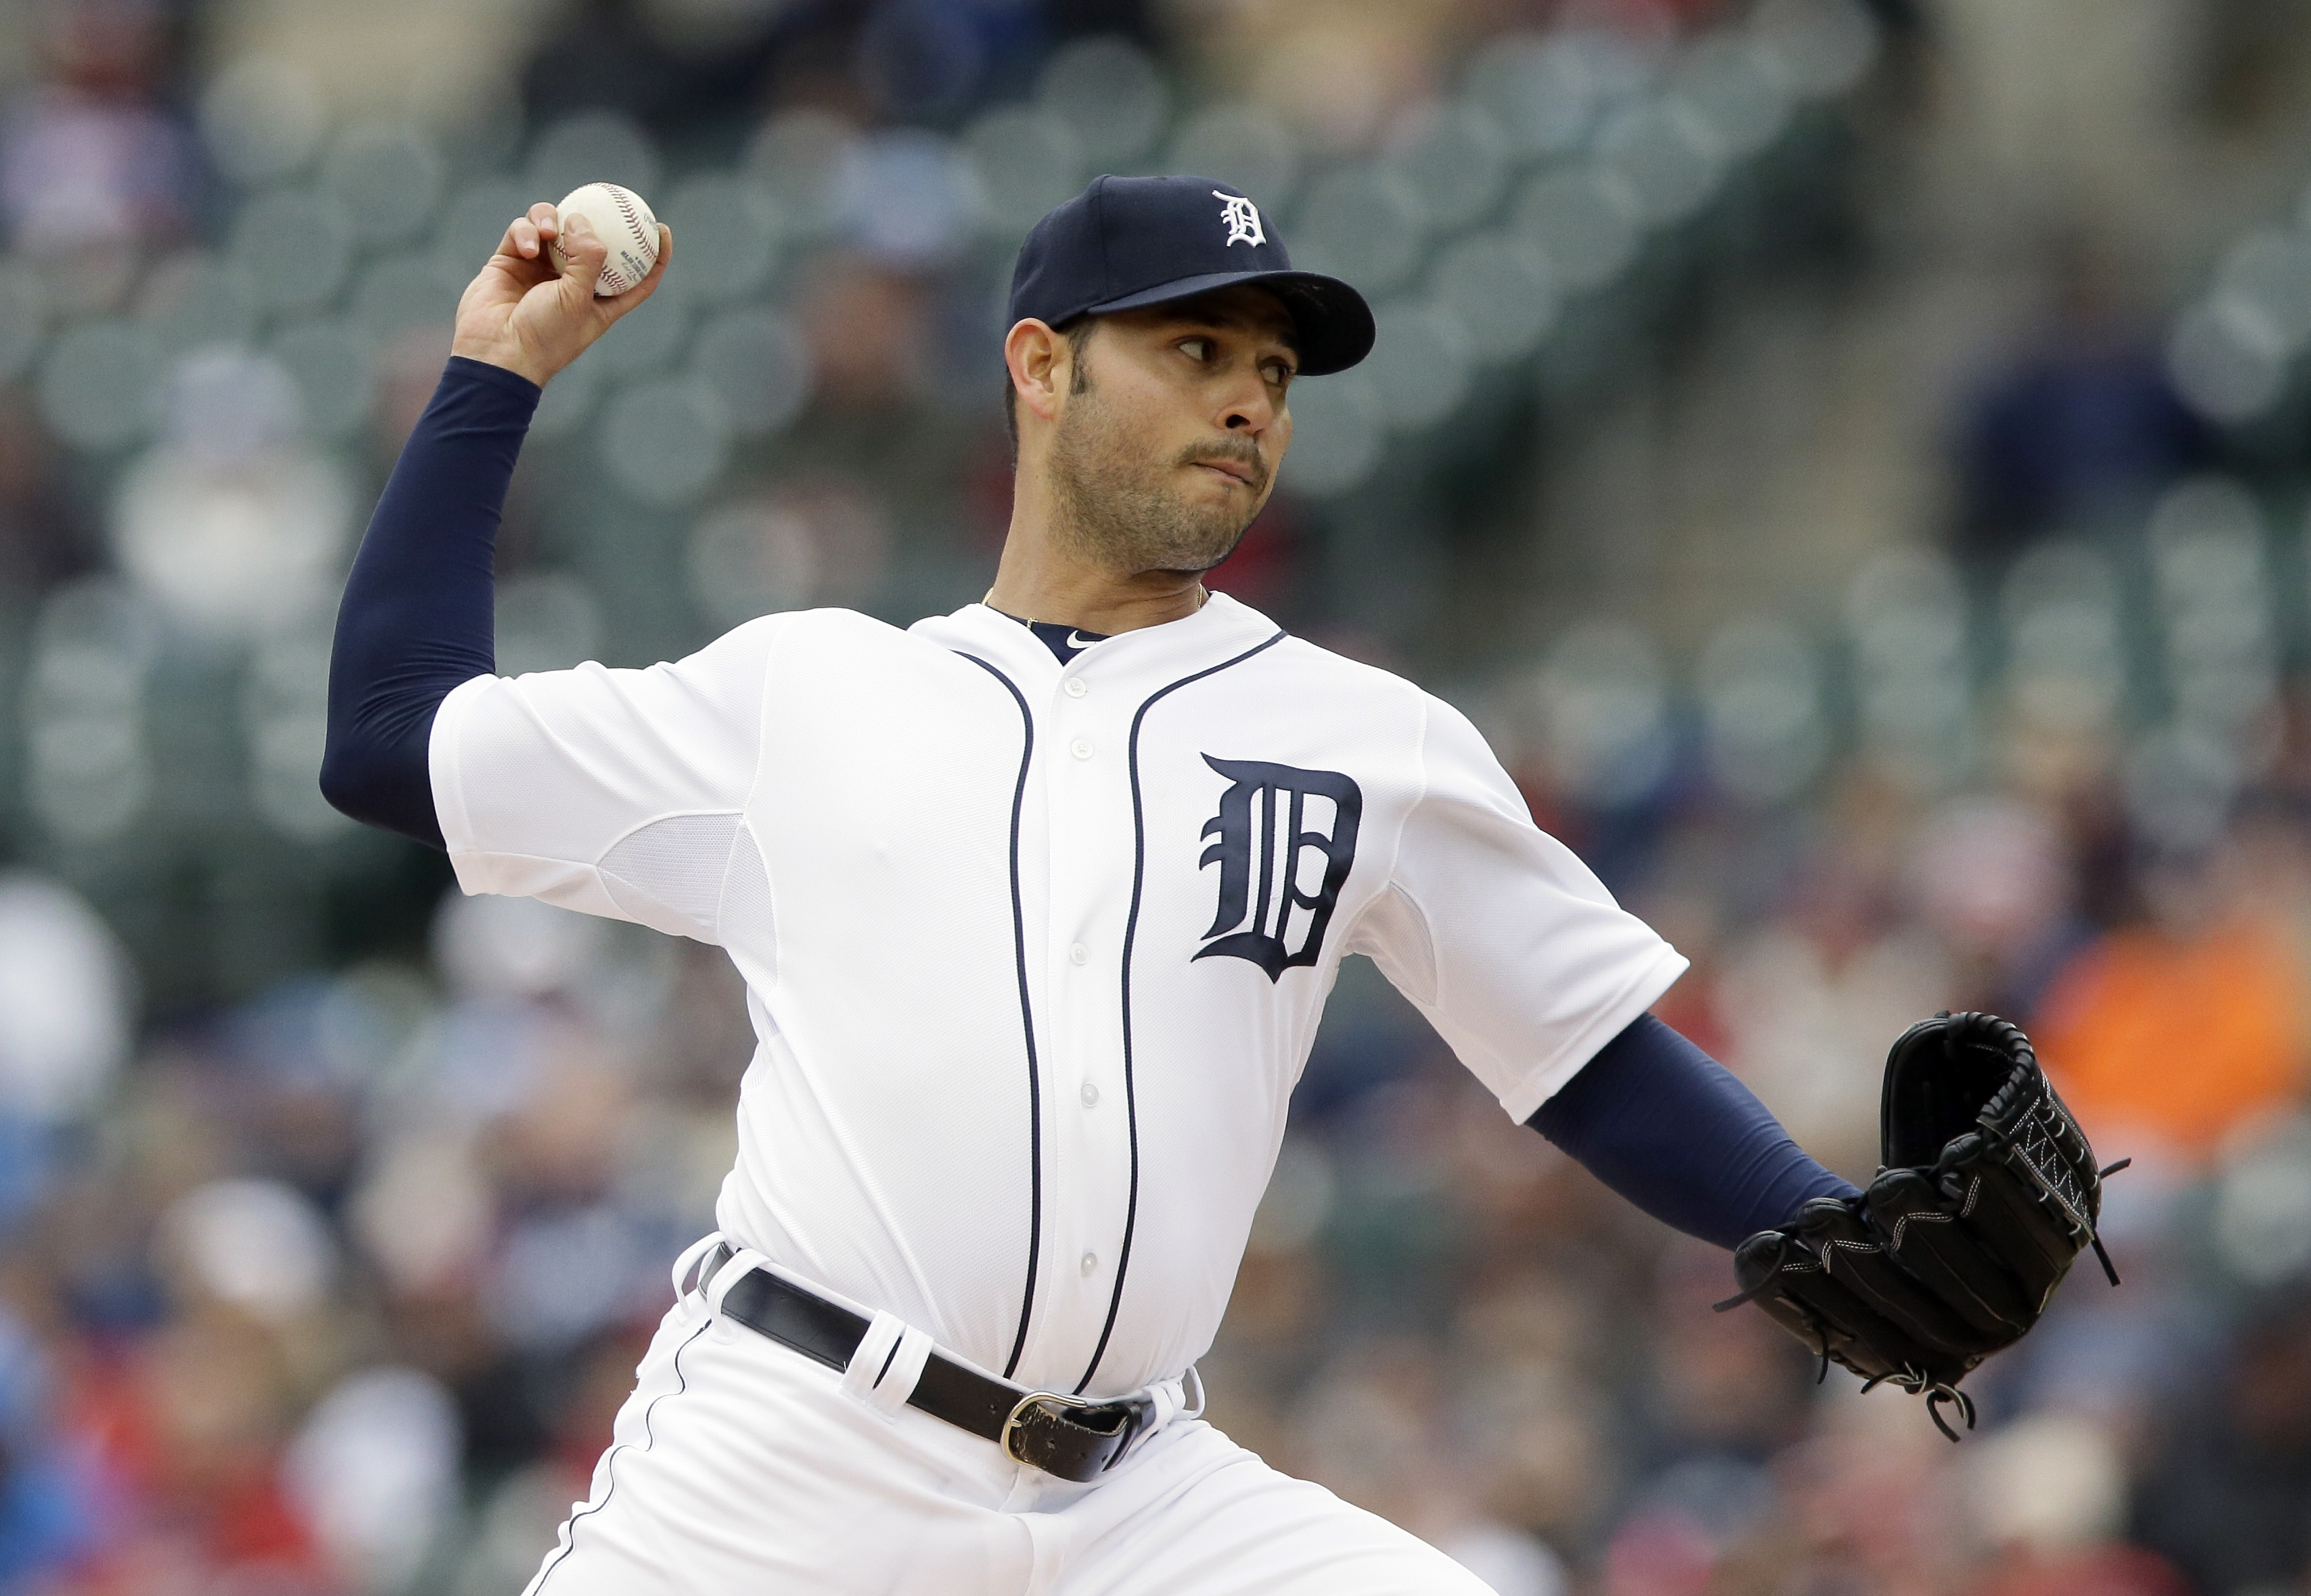 Detroit Tigers starter Anibal Sanchez throws during the first inning of a baseball game against the New York Yankees, Thursday, April 23, 2015, in Detroit. (AP Photo/Carlos Osorio)